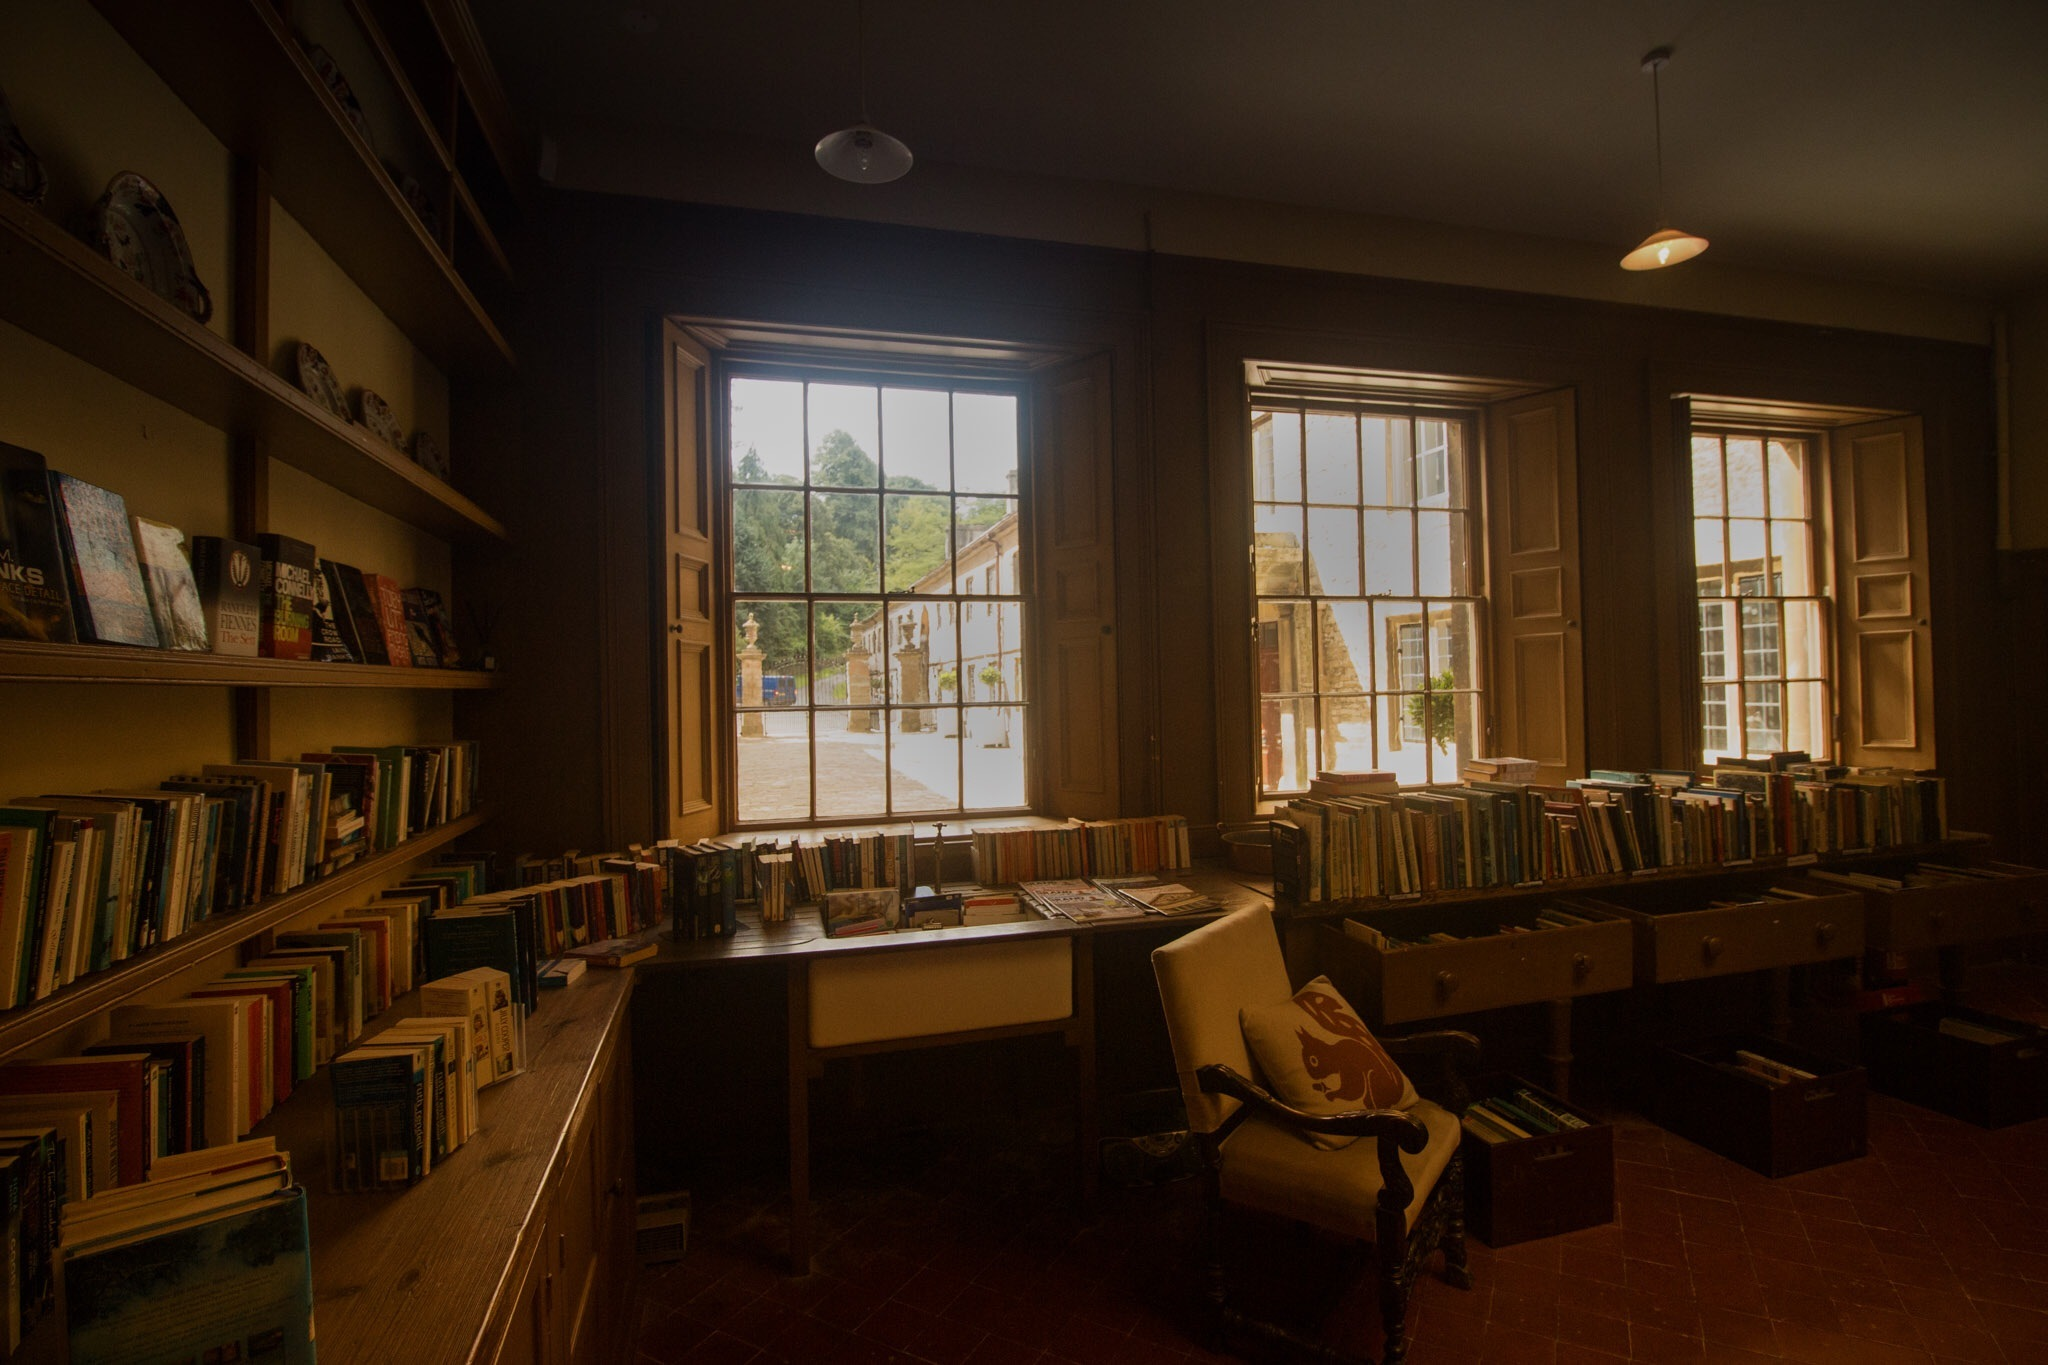 Light, Chair and Books by JohnJN